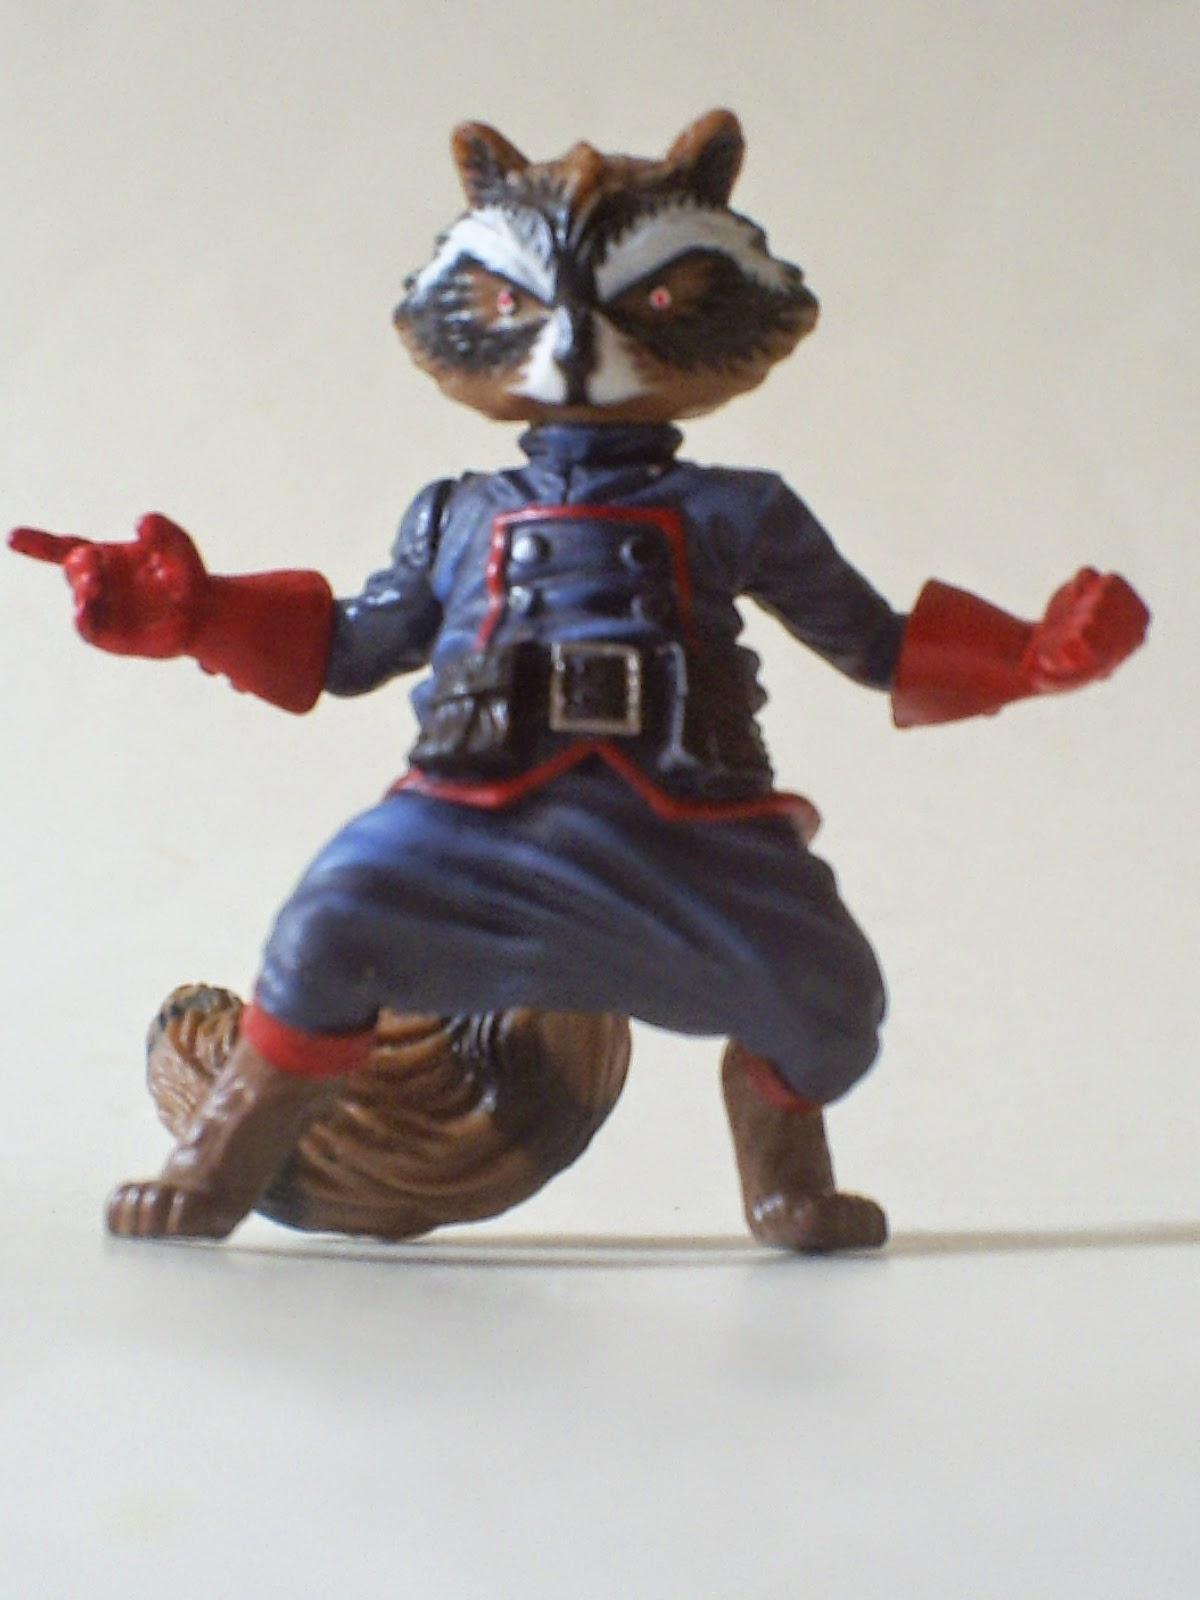 Star Lord And Rocket Raccoon By Timothygreenii On Deviantart: That Figures: REVIEW: Marvel Universe's Rocket Raccoon & Groot